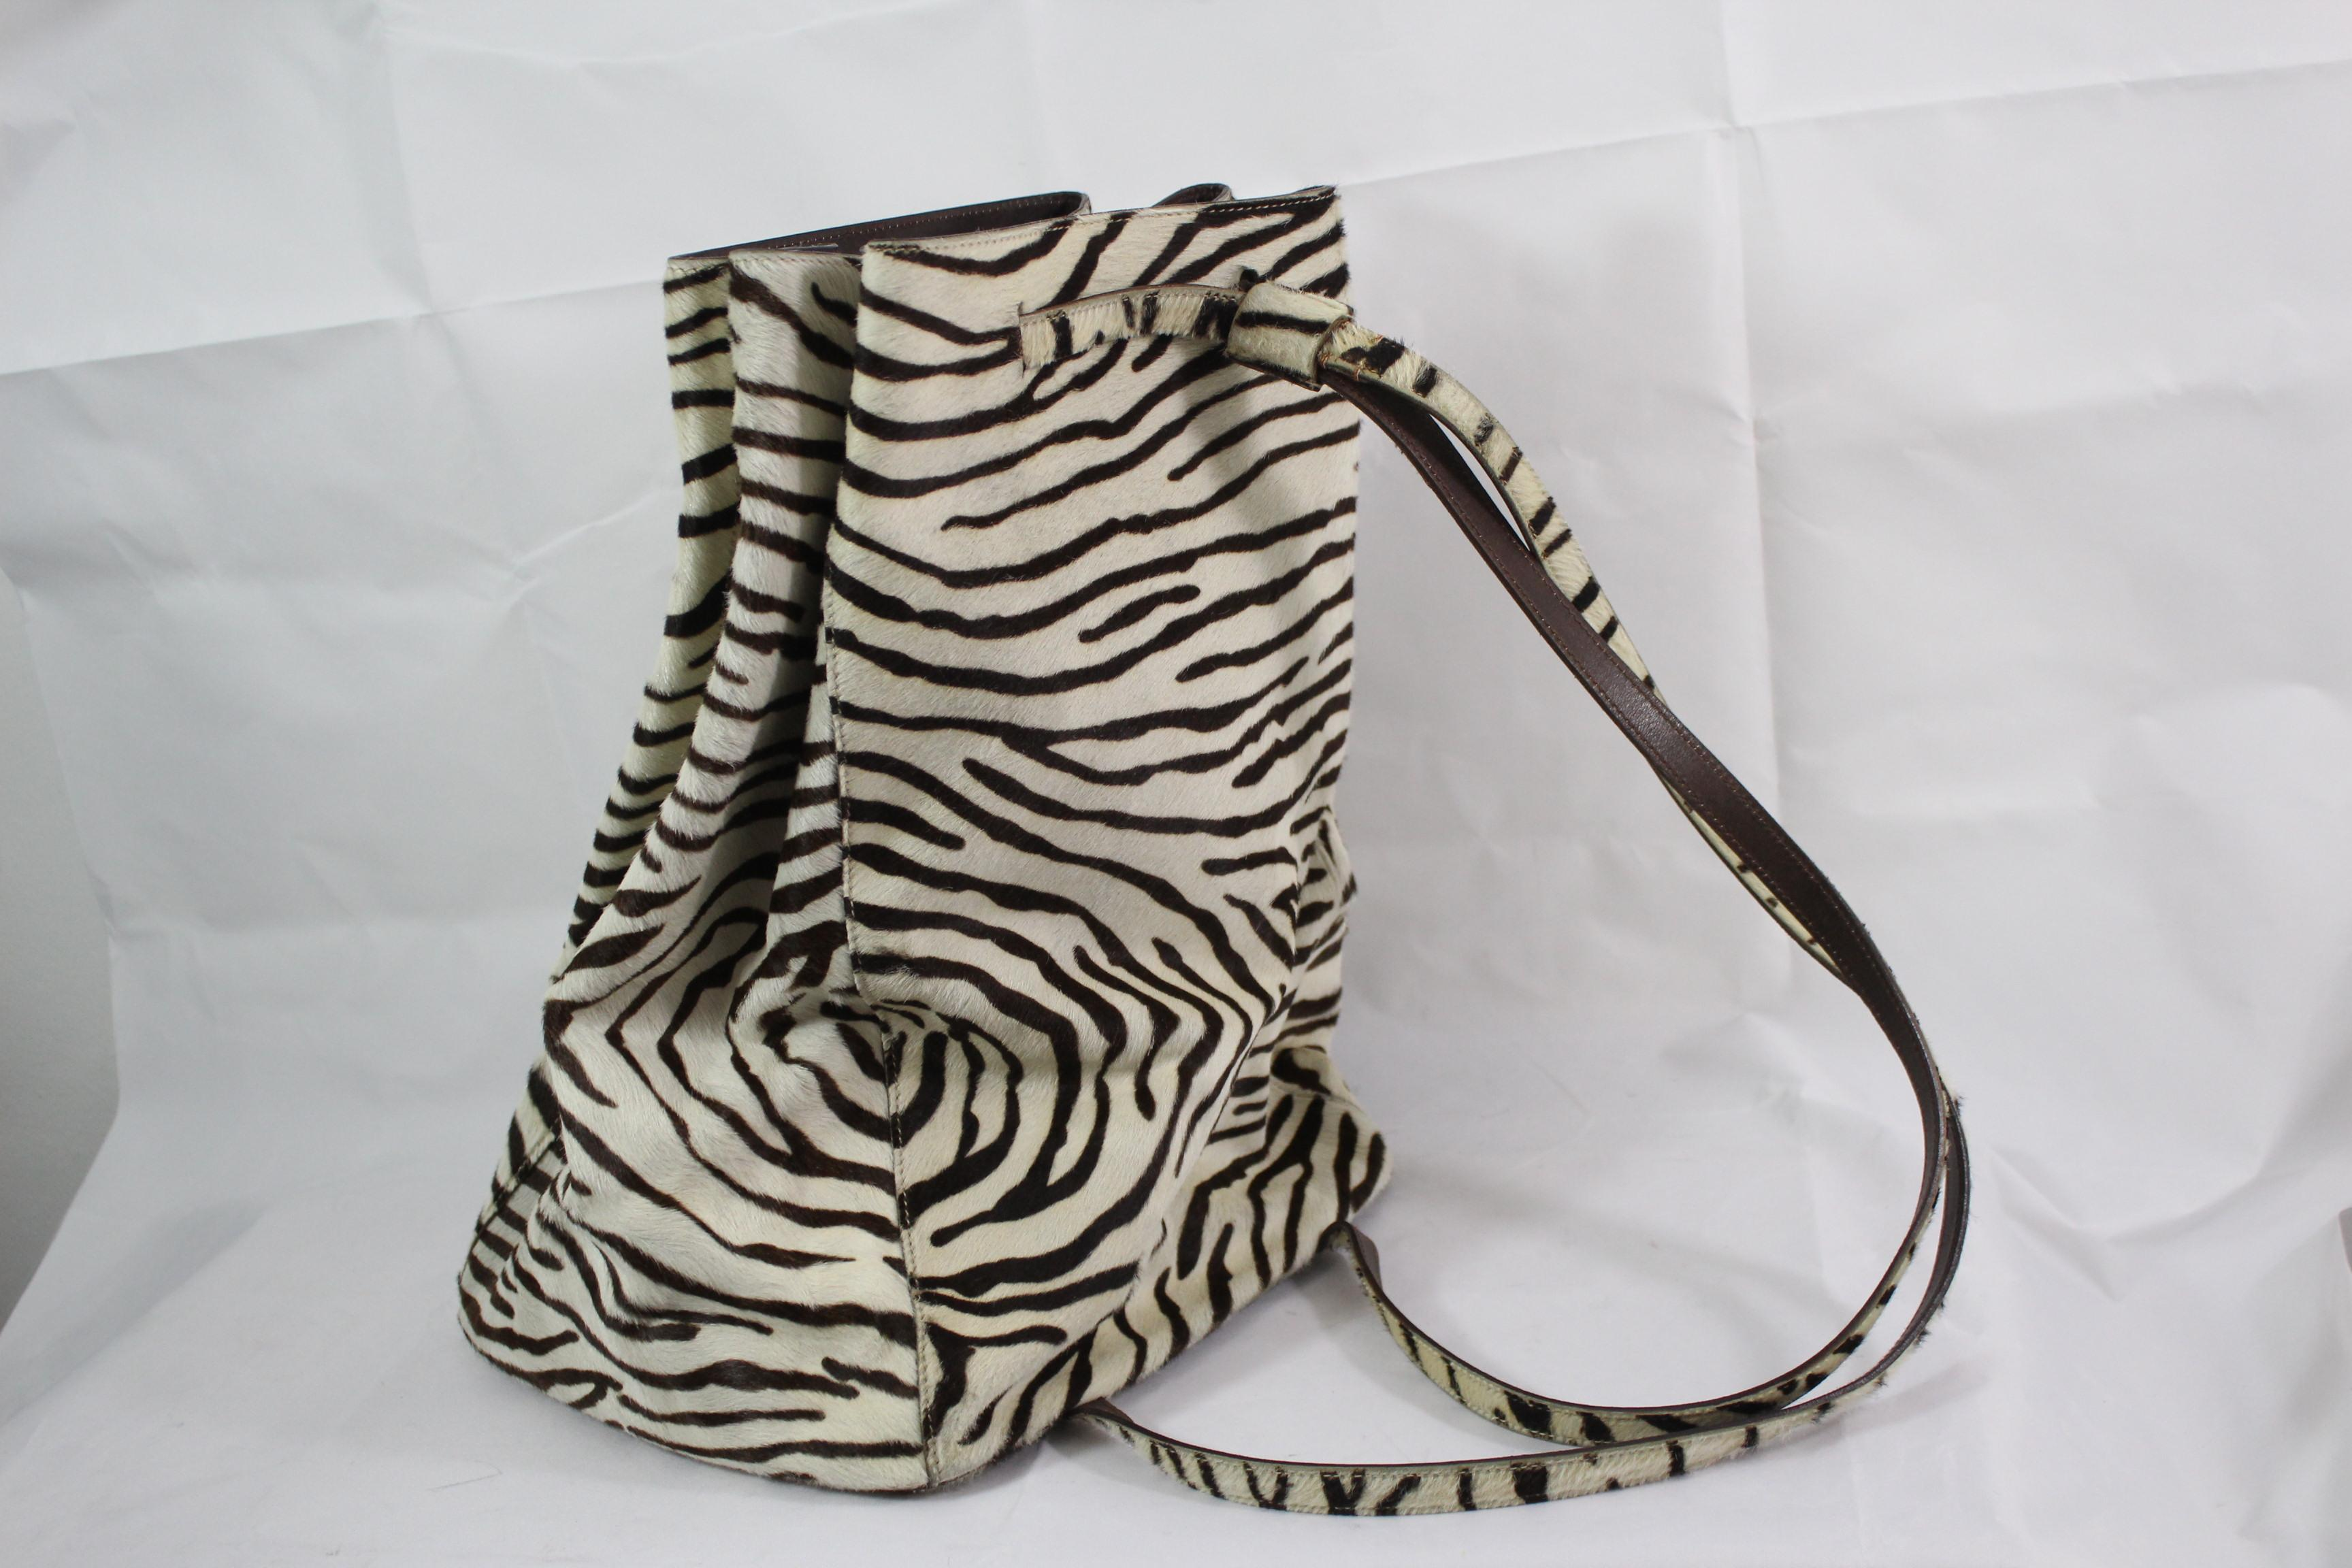 e8363ba0fa72 ... authentic prada zebra style leather backpack in excellent condition for  sale in paris fr f28c6 0c7d1